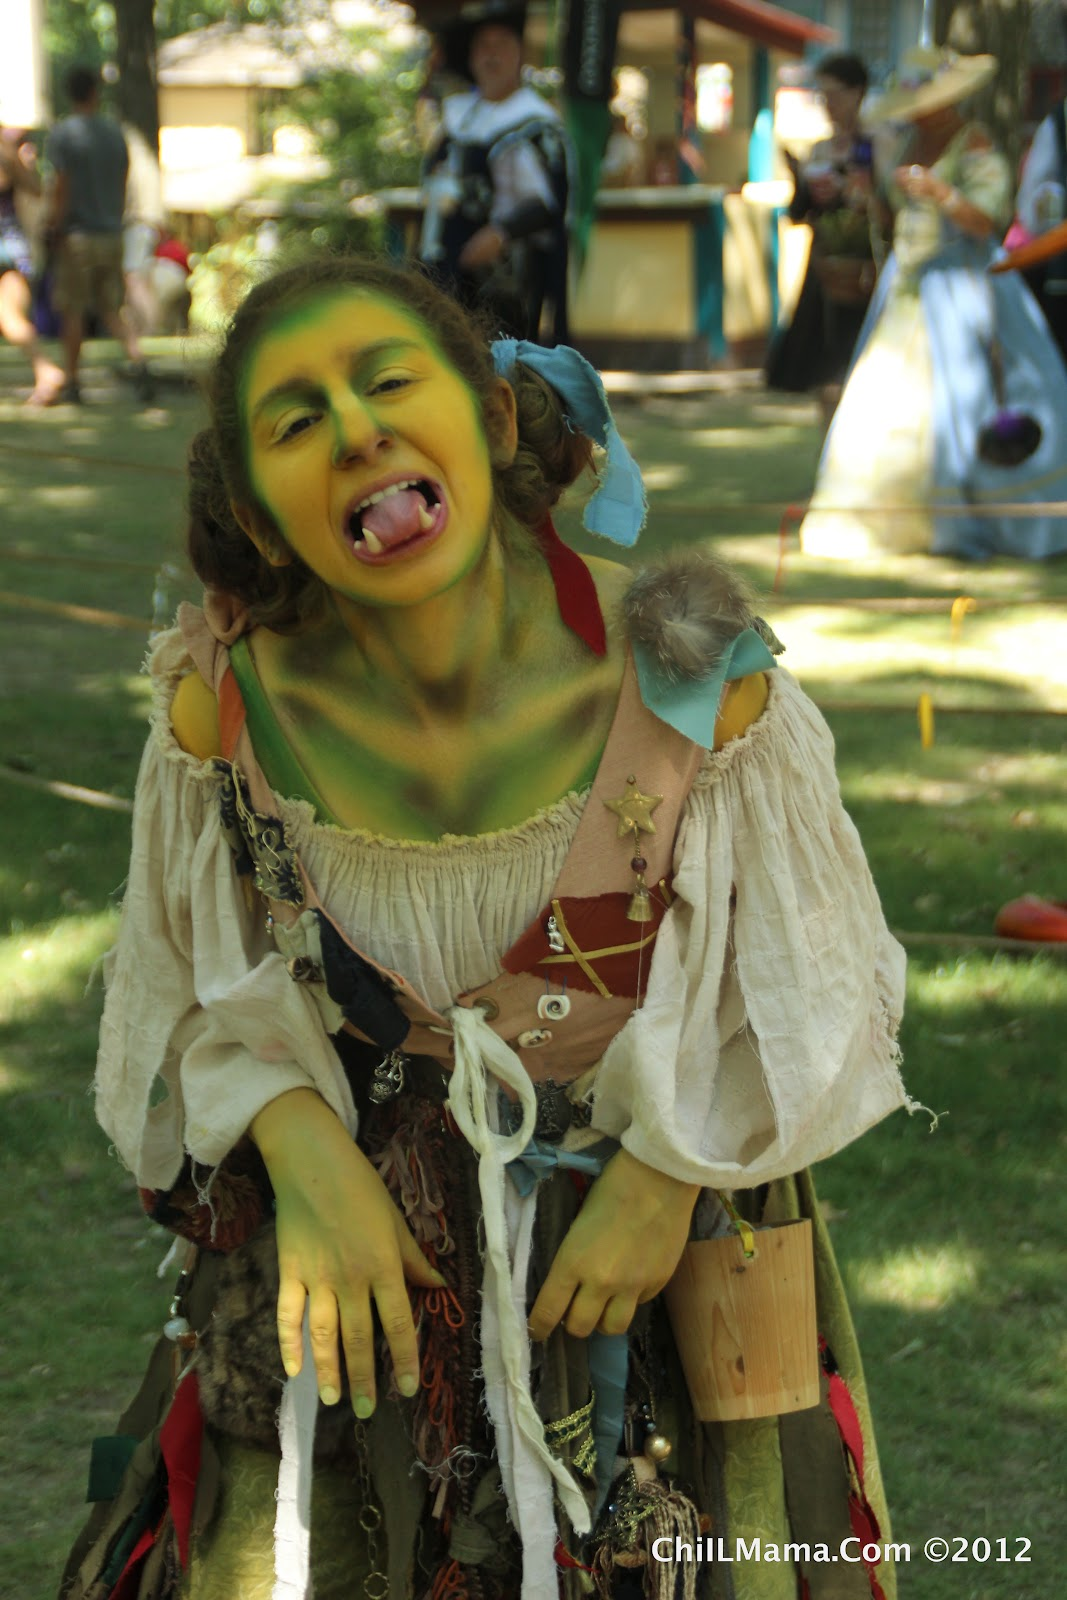 ChiIL Mama Bristol Renaissance Faire-Best Of The Fest 2012 #Photo Filled Recap  sc 1 st  ChiIL Mama & ChiIL Mama: Bristol Renaissance Faire-Best Of The Fest 2012 #Photo ...